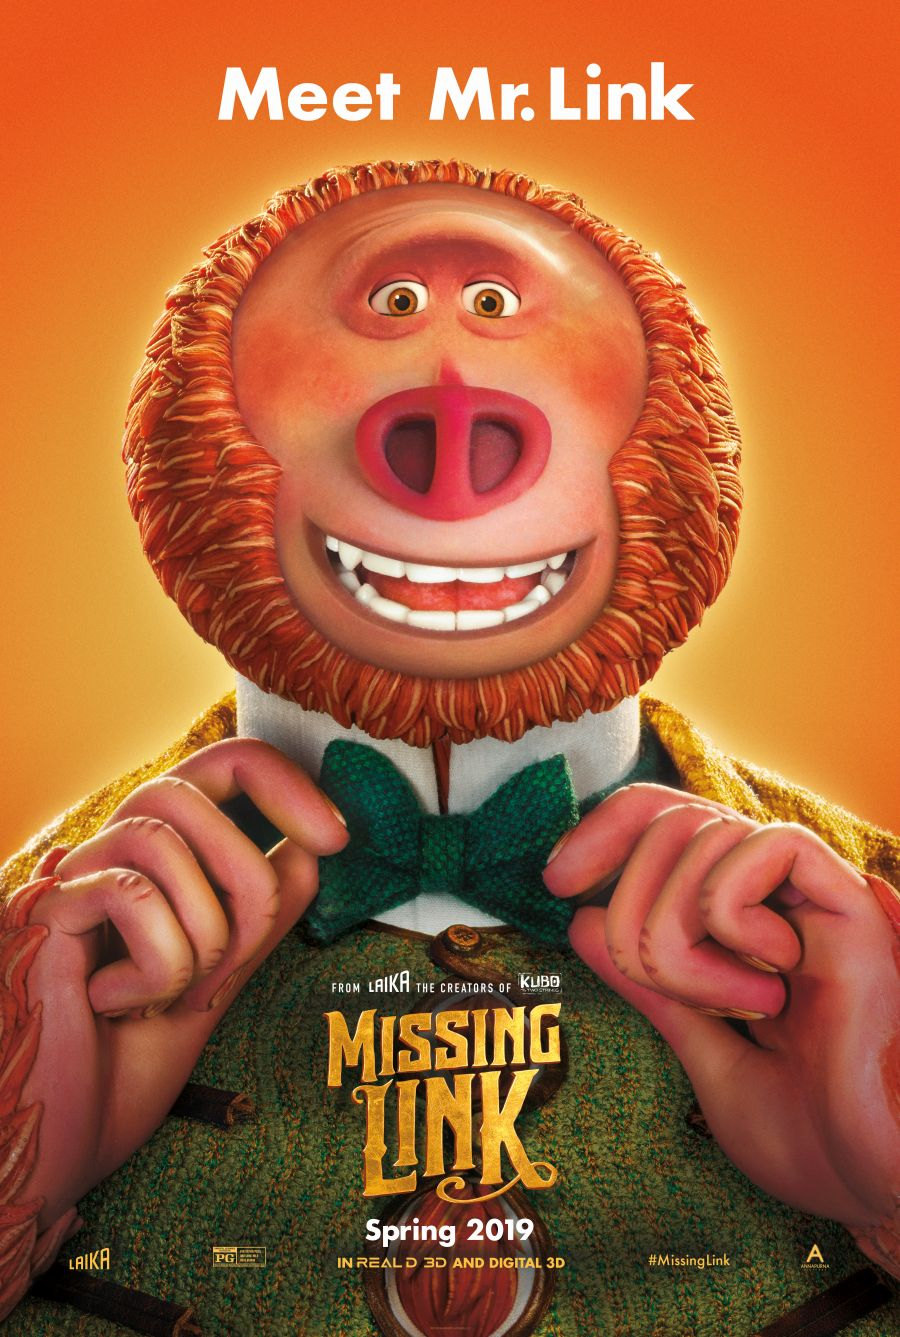 MISSING LINK - Watch the Trailer! Don't Miss It In theaters April 12th #MissingLink